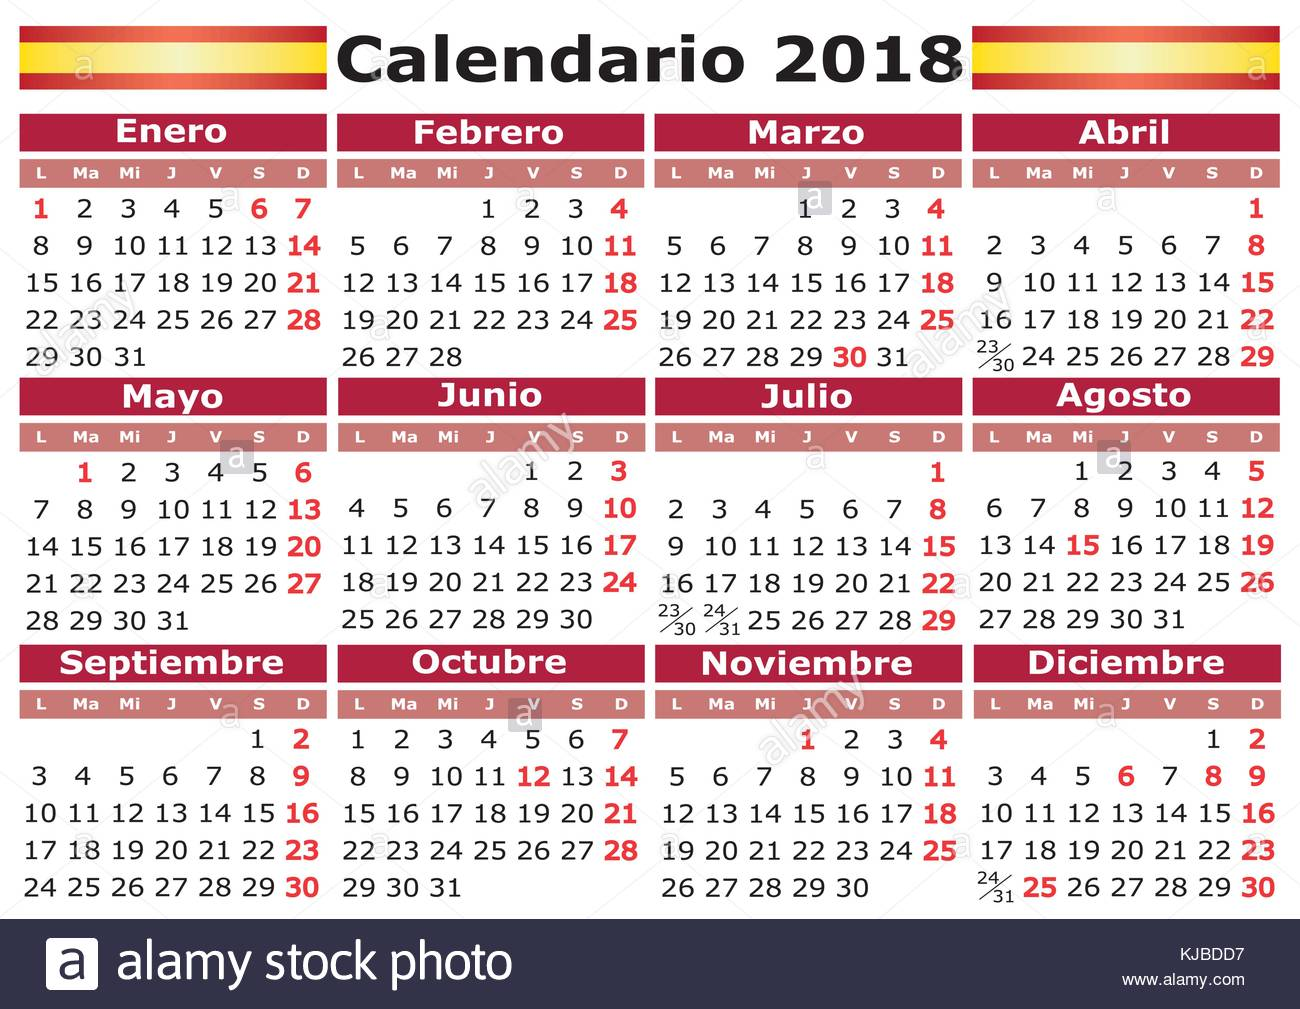 Calendario 18.Calendario 2018 Spanish Calendar With Festive Days Pocket Calendar